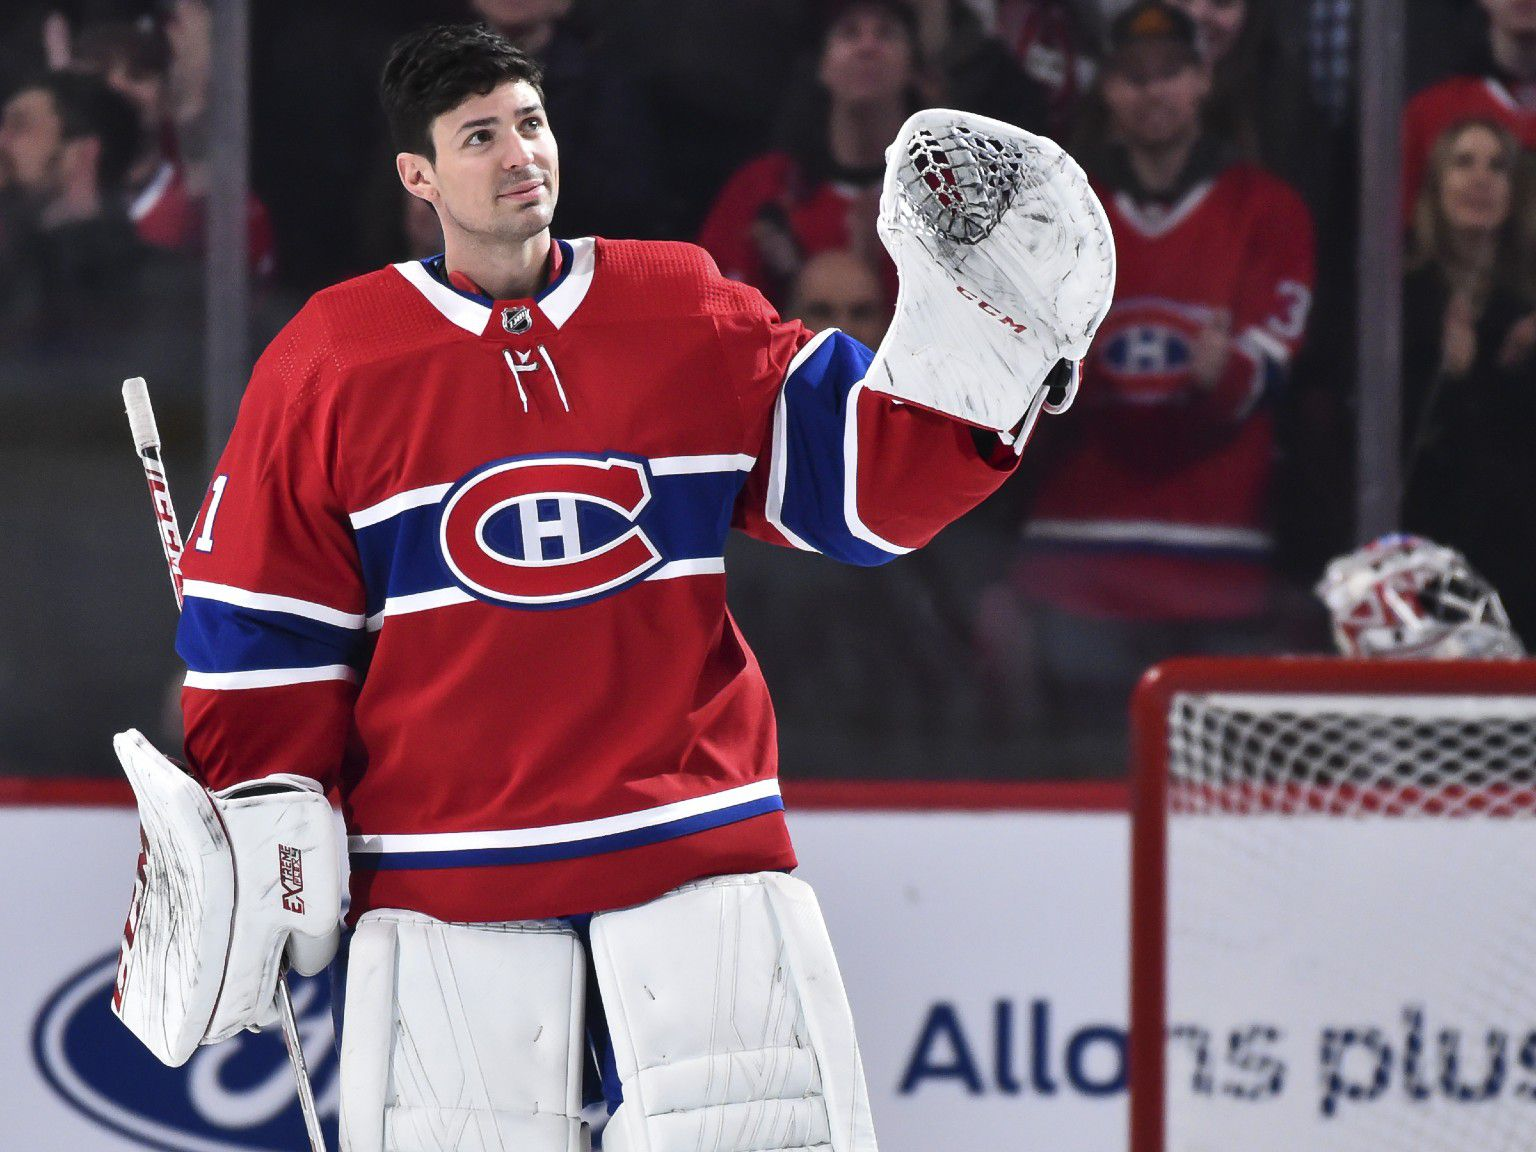 Carey Price is taking a break for his mental health